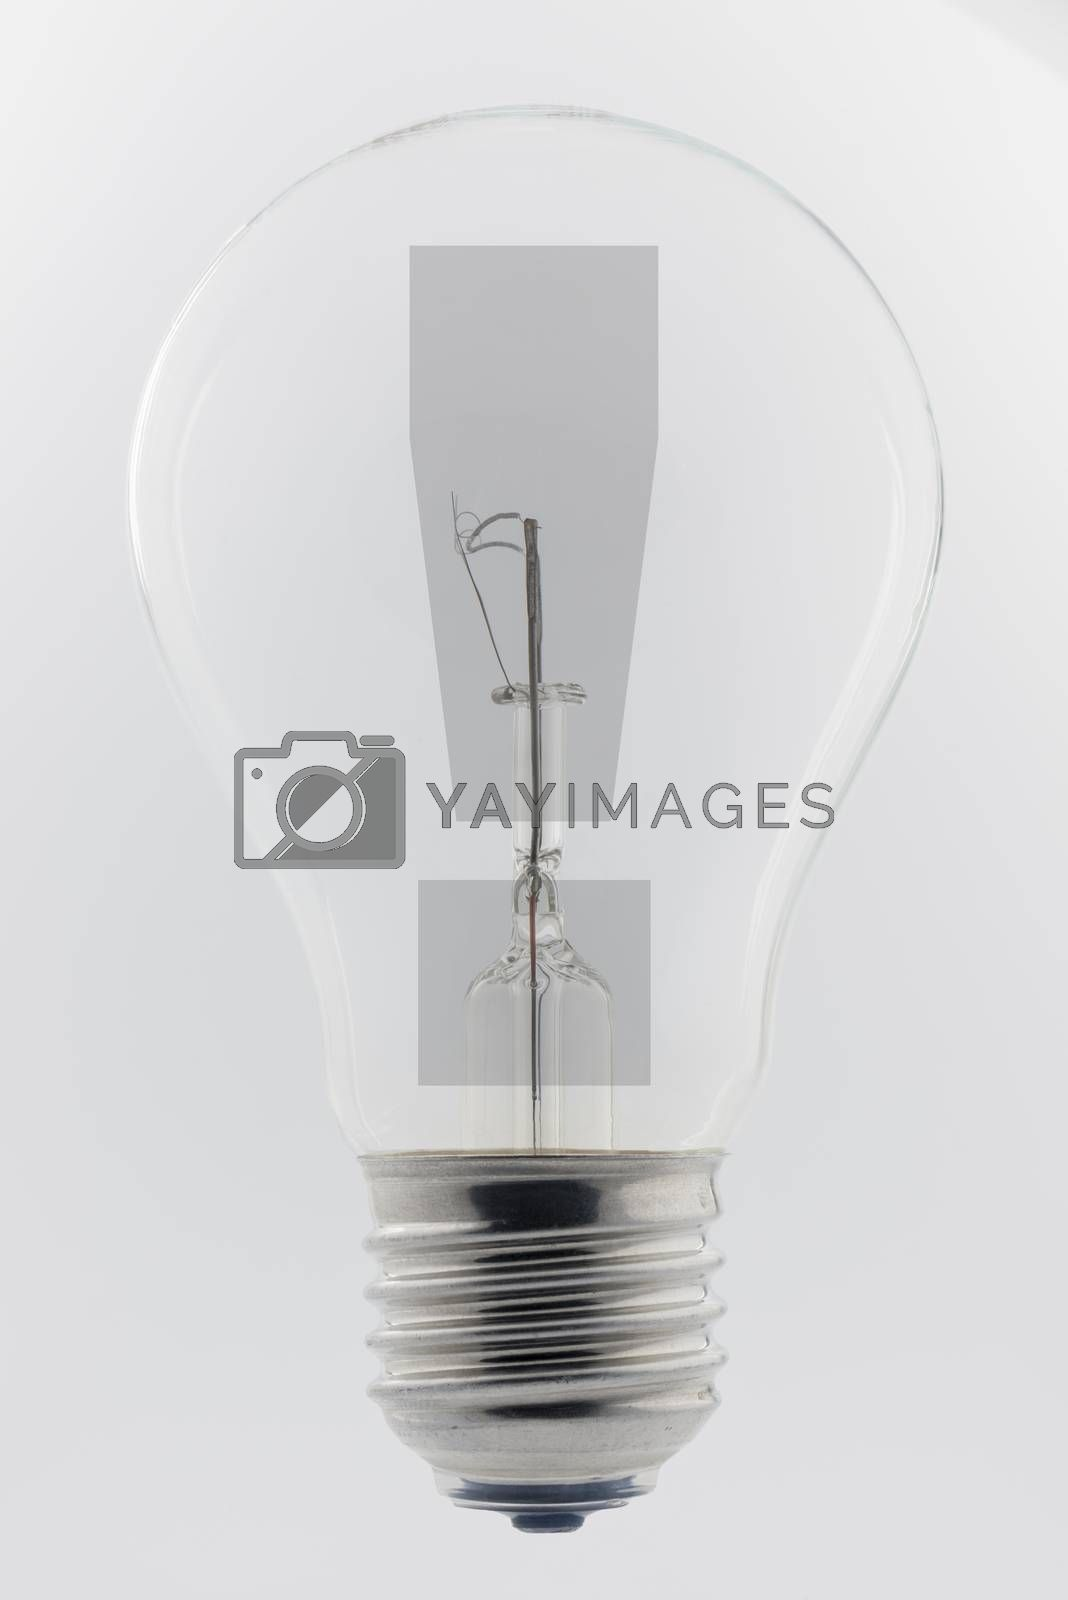 Photo of an old light bulb with an exclamation mark